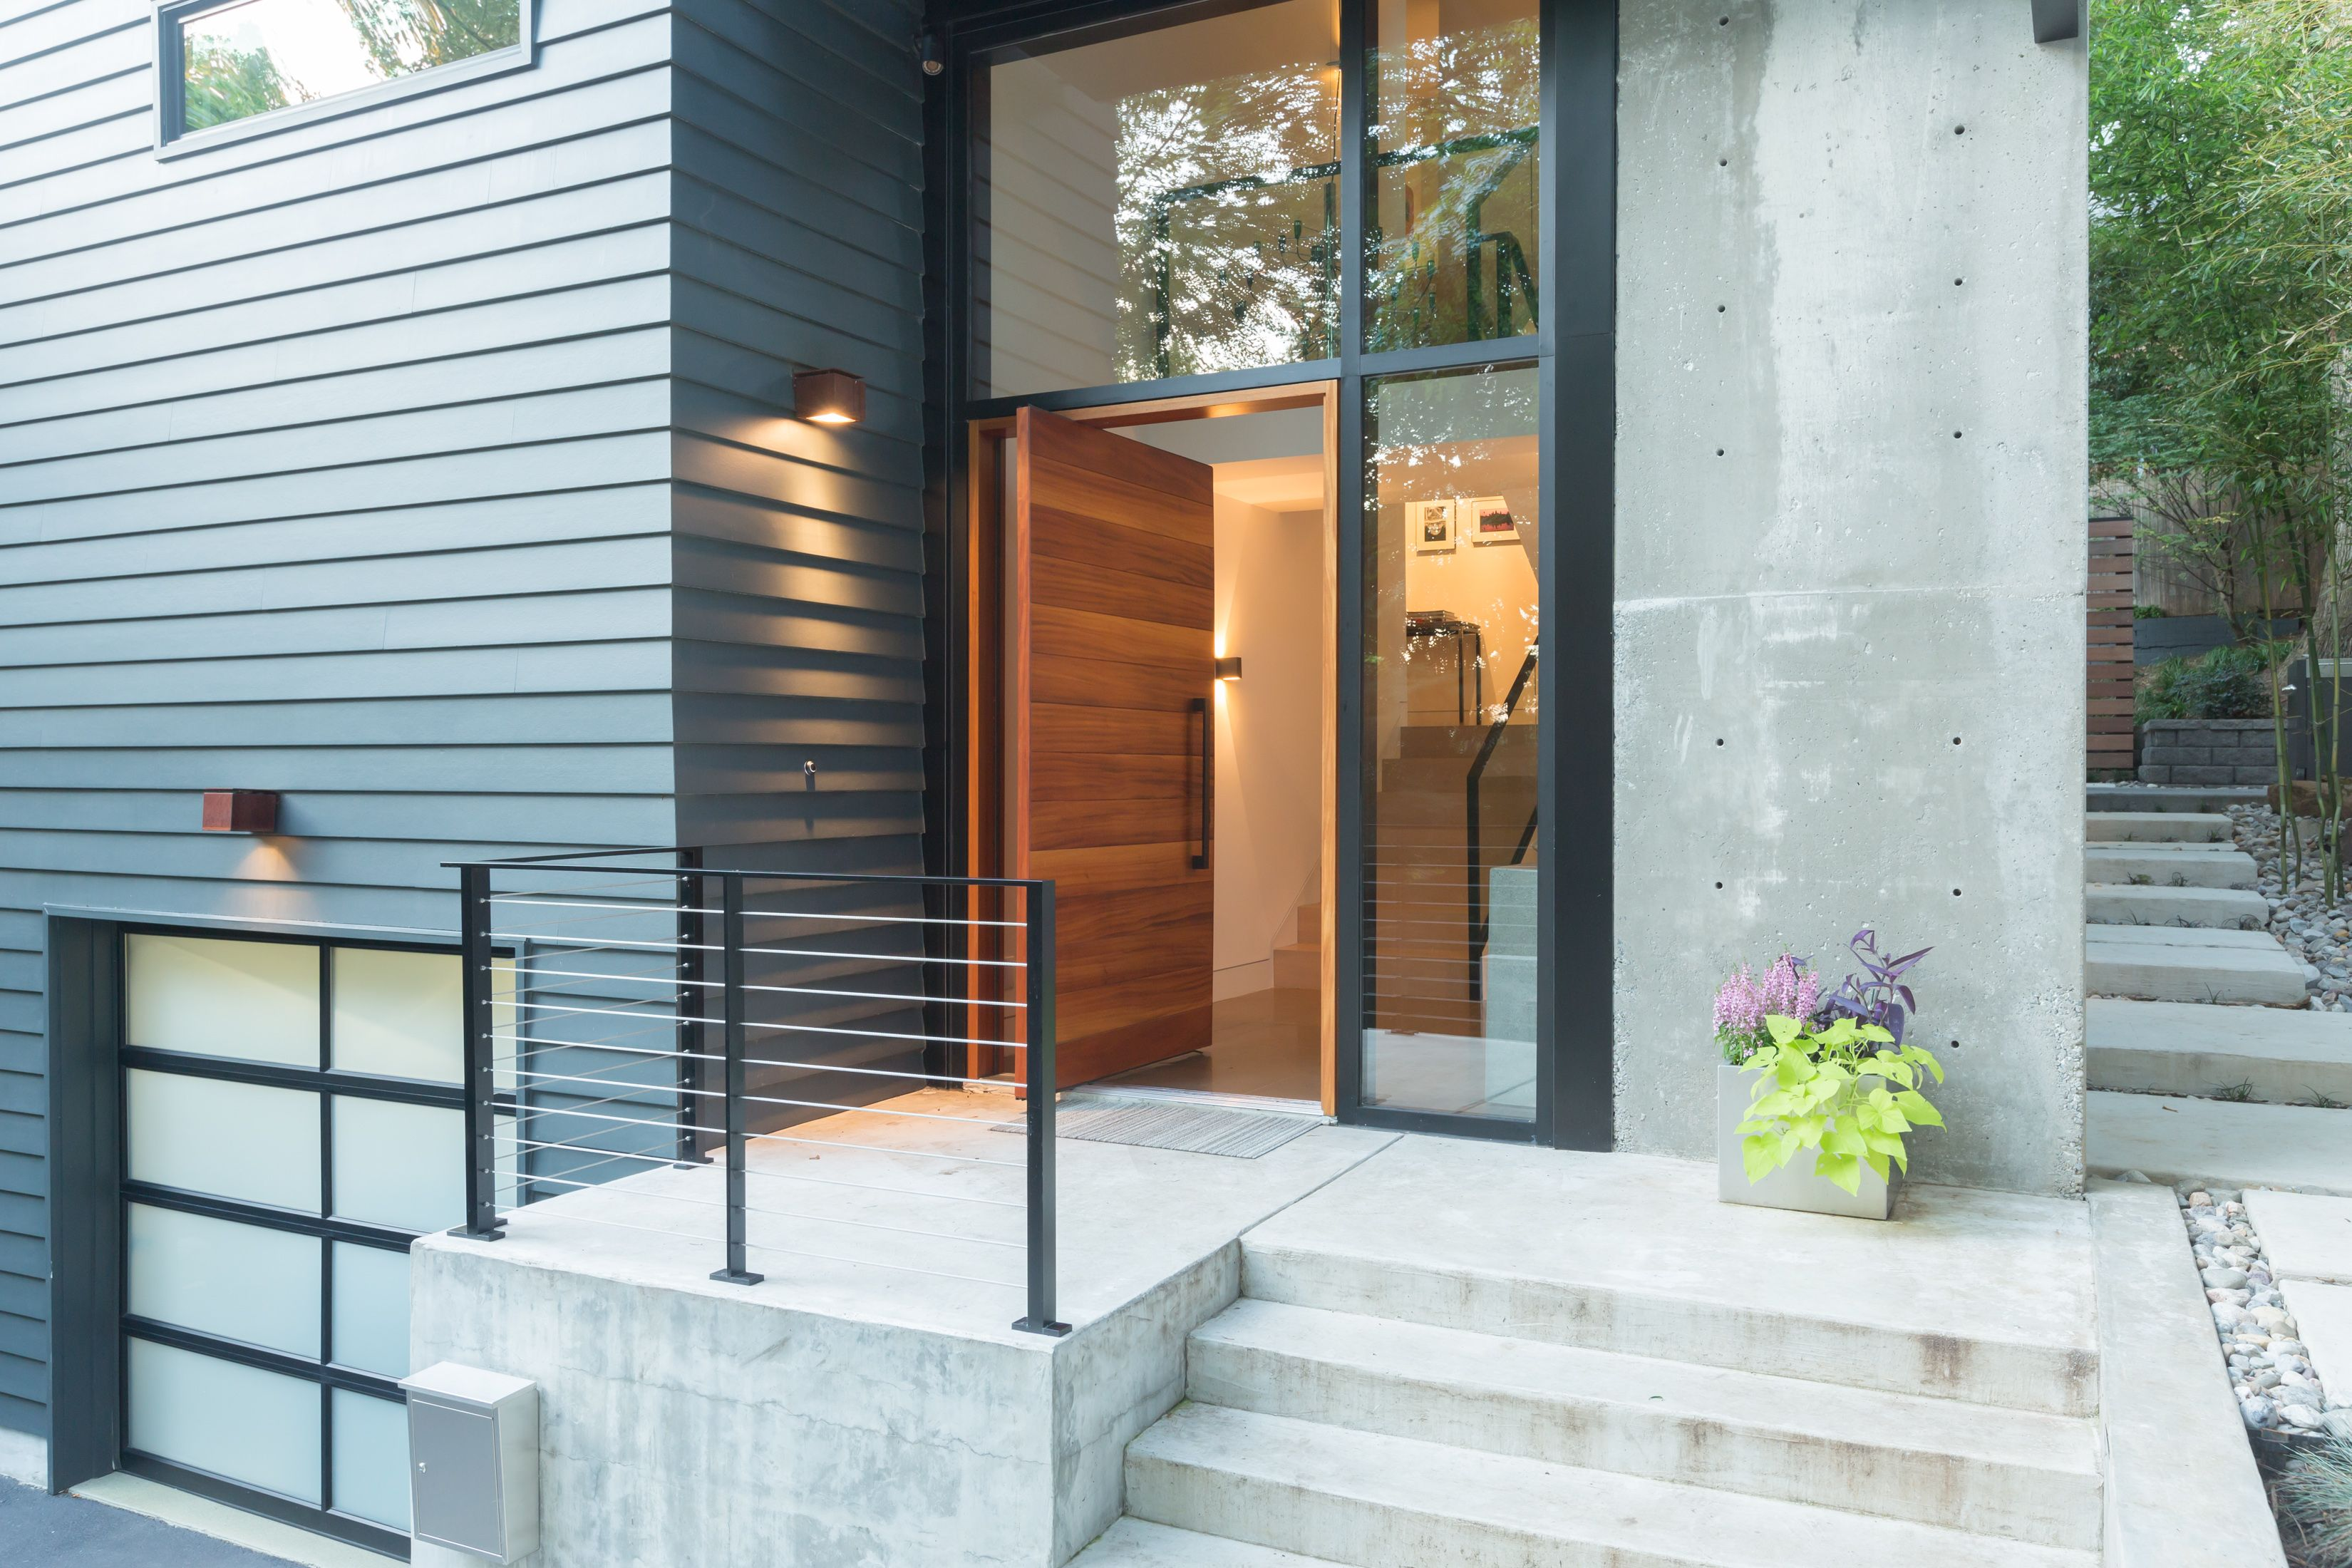 Modern house with mitered HardiePlank Artisan siding, aluminum curtain wall, board-formed concrete wall and steps, steel and cables railing, frosted glass garage doors, rusted Corten steel lights by Viabizzuno, and Sapele African Mahogany pivot door with Chant hardware and door pull in Washington DC.